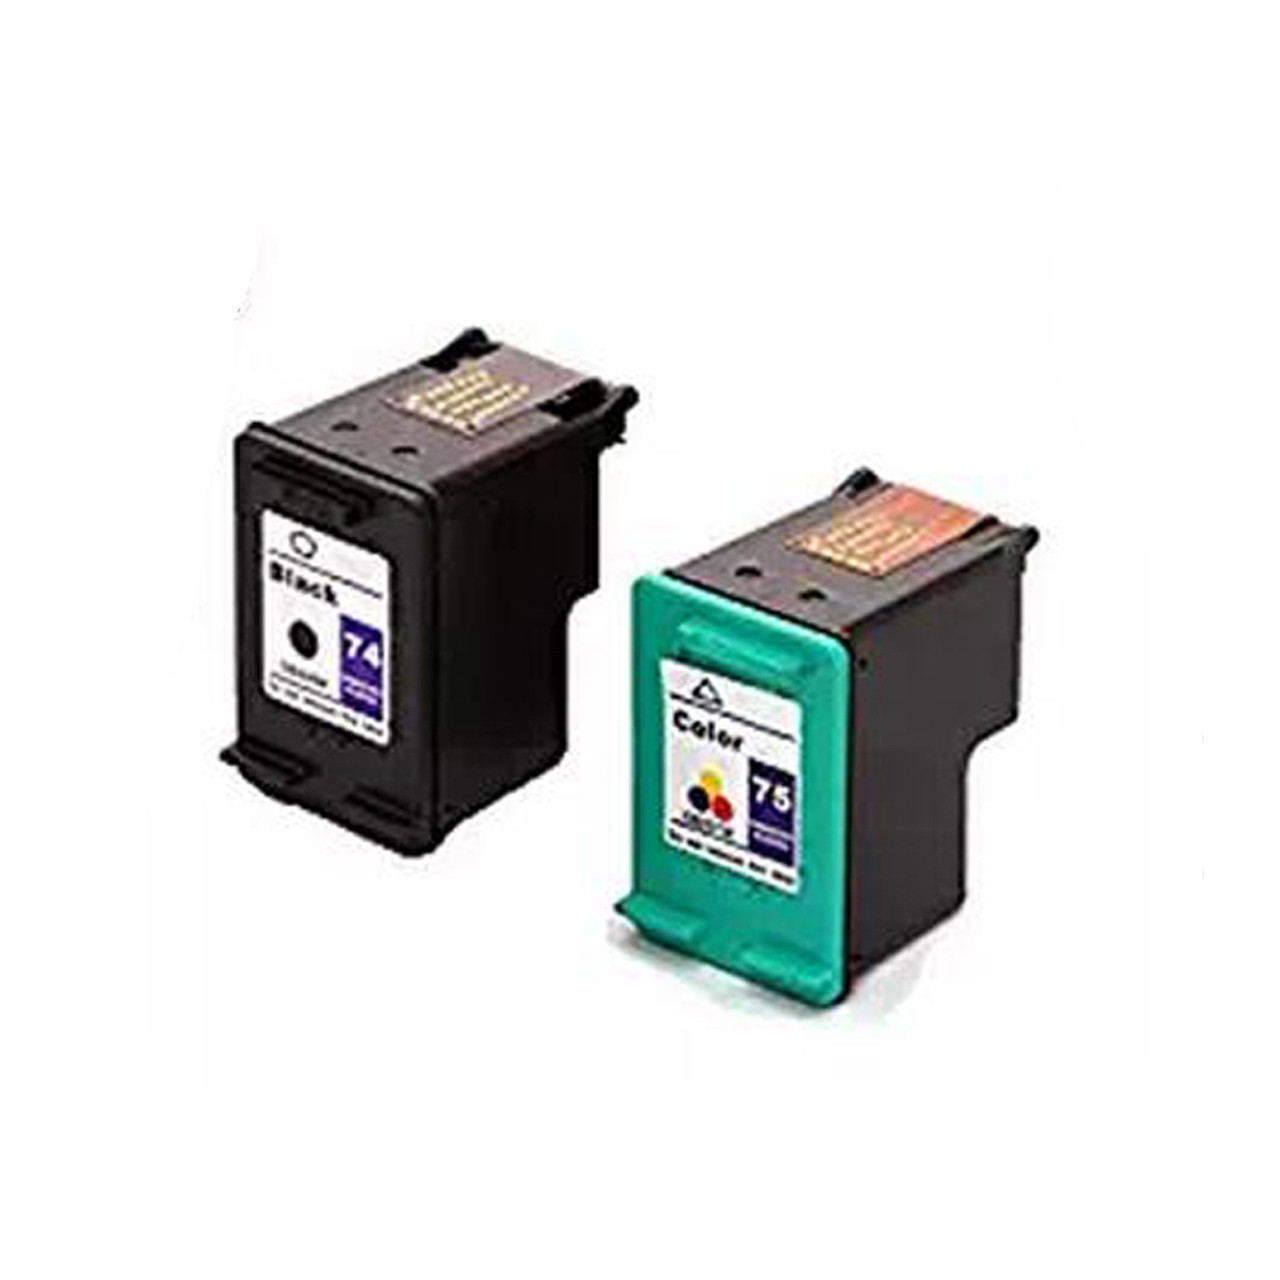 Generic Remanufactured Ink Cartridge Replacement for HP HP 74 75 Black, Color , 2-Pack